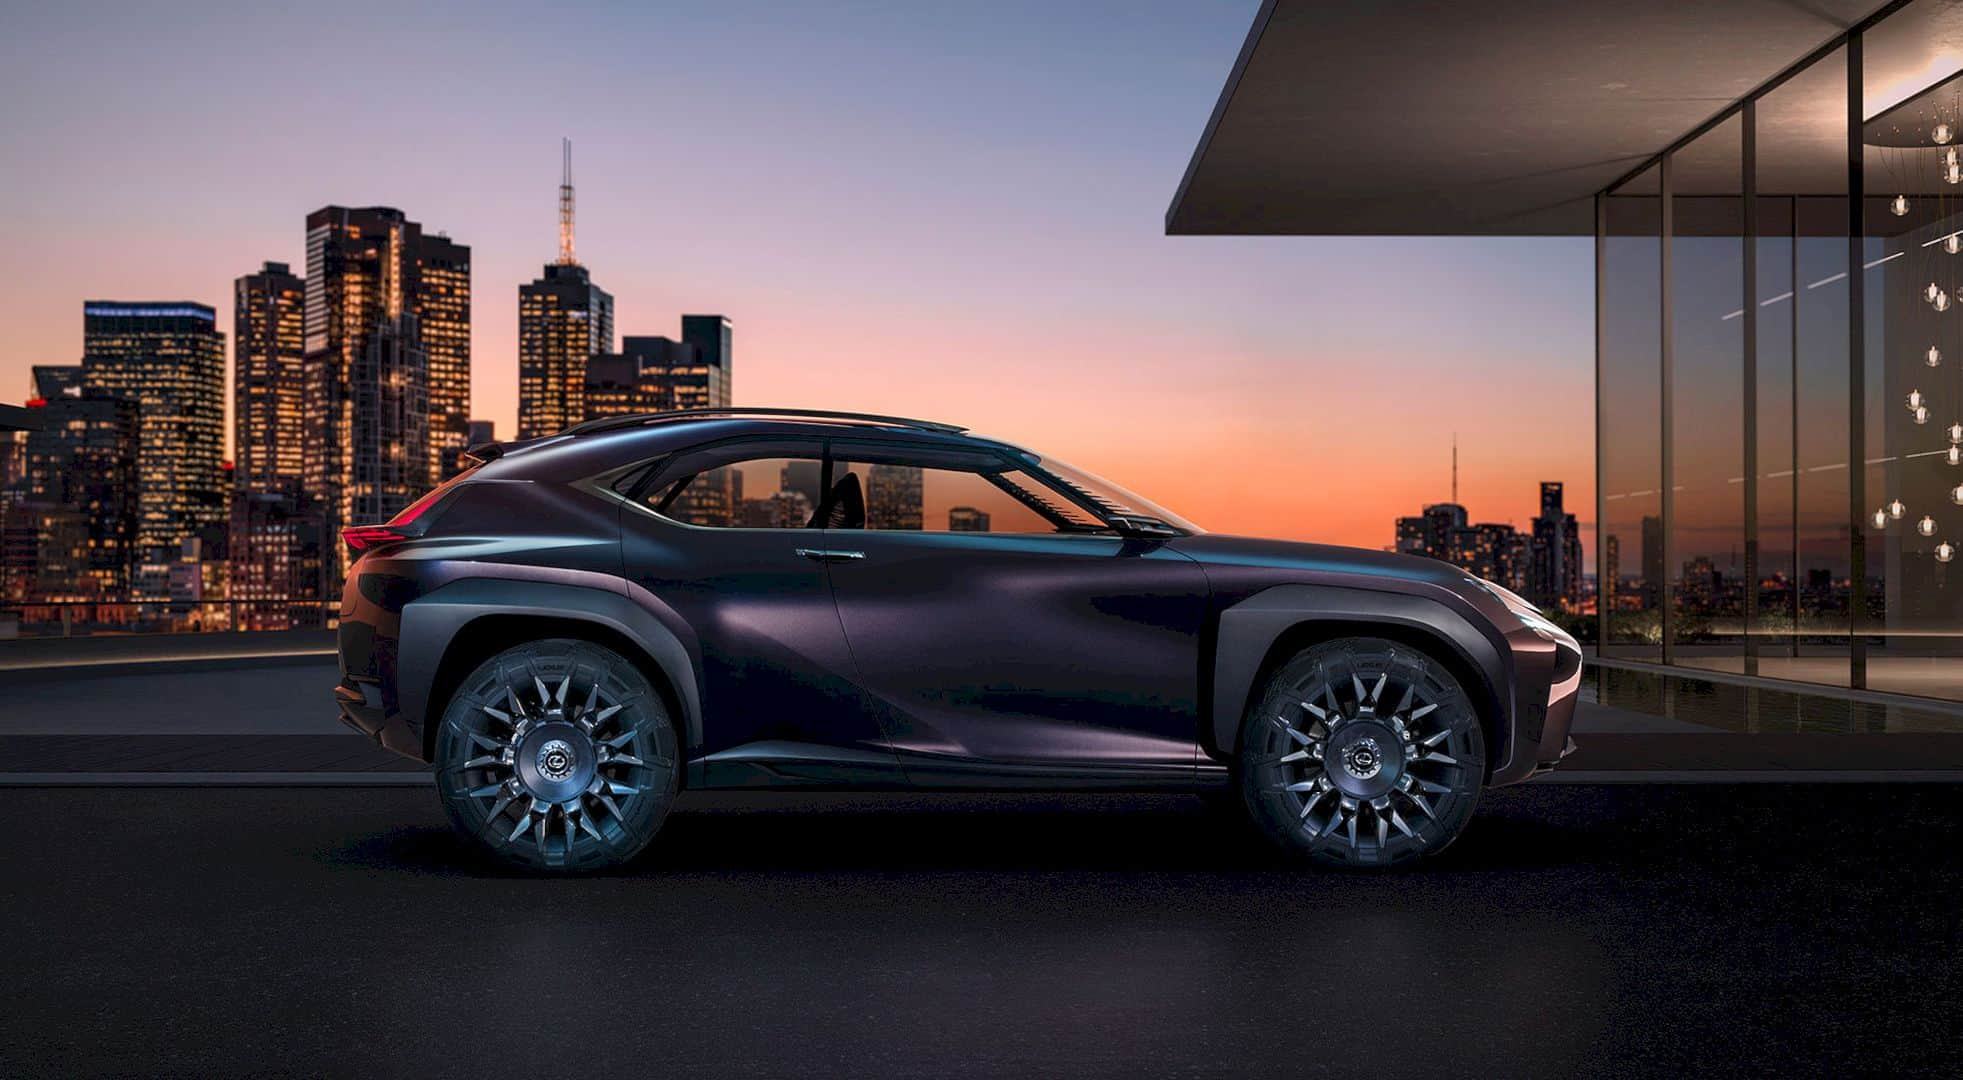 Lexus Concept Car Code UX: A Futuristic Inside Out